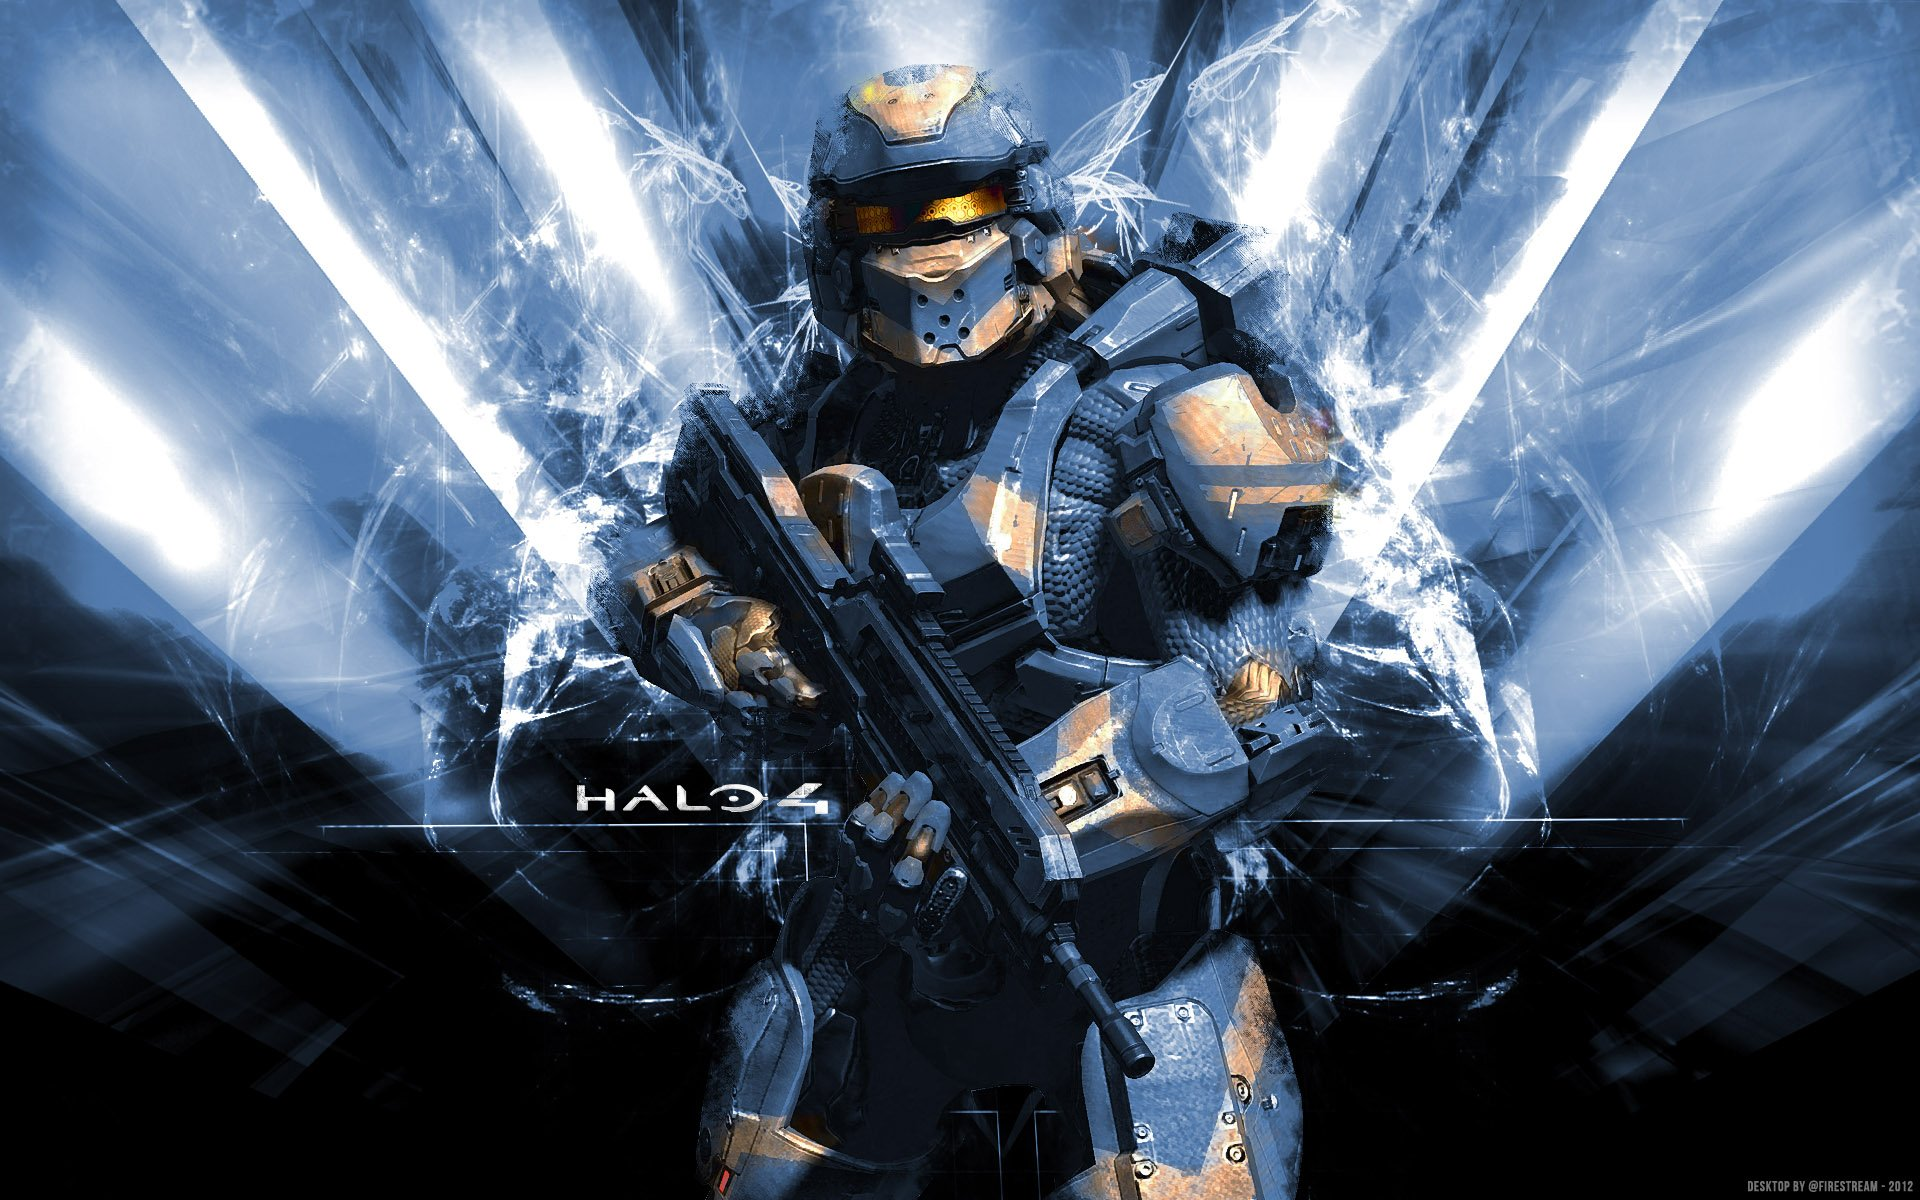 Halo 4 Elite Wallpaper Images amp Pictures   Becuo 1920x1200